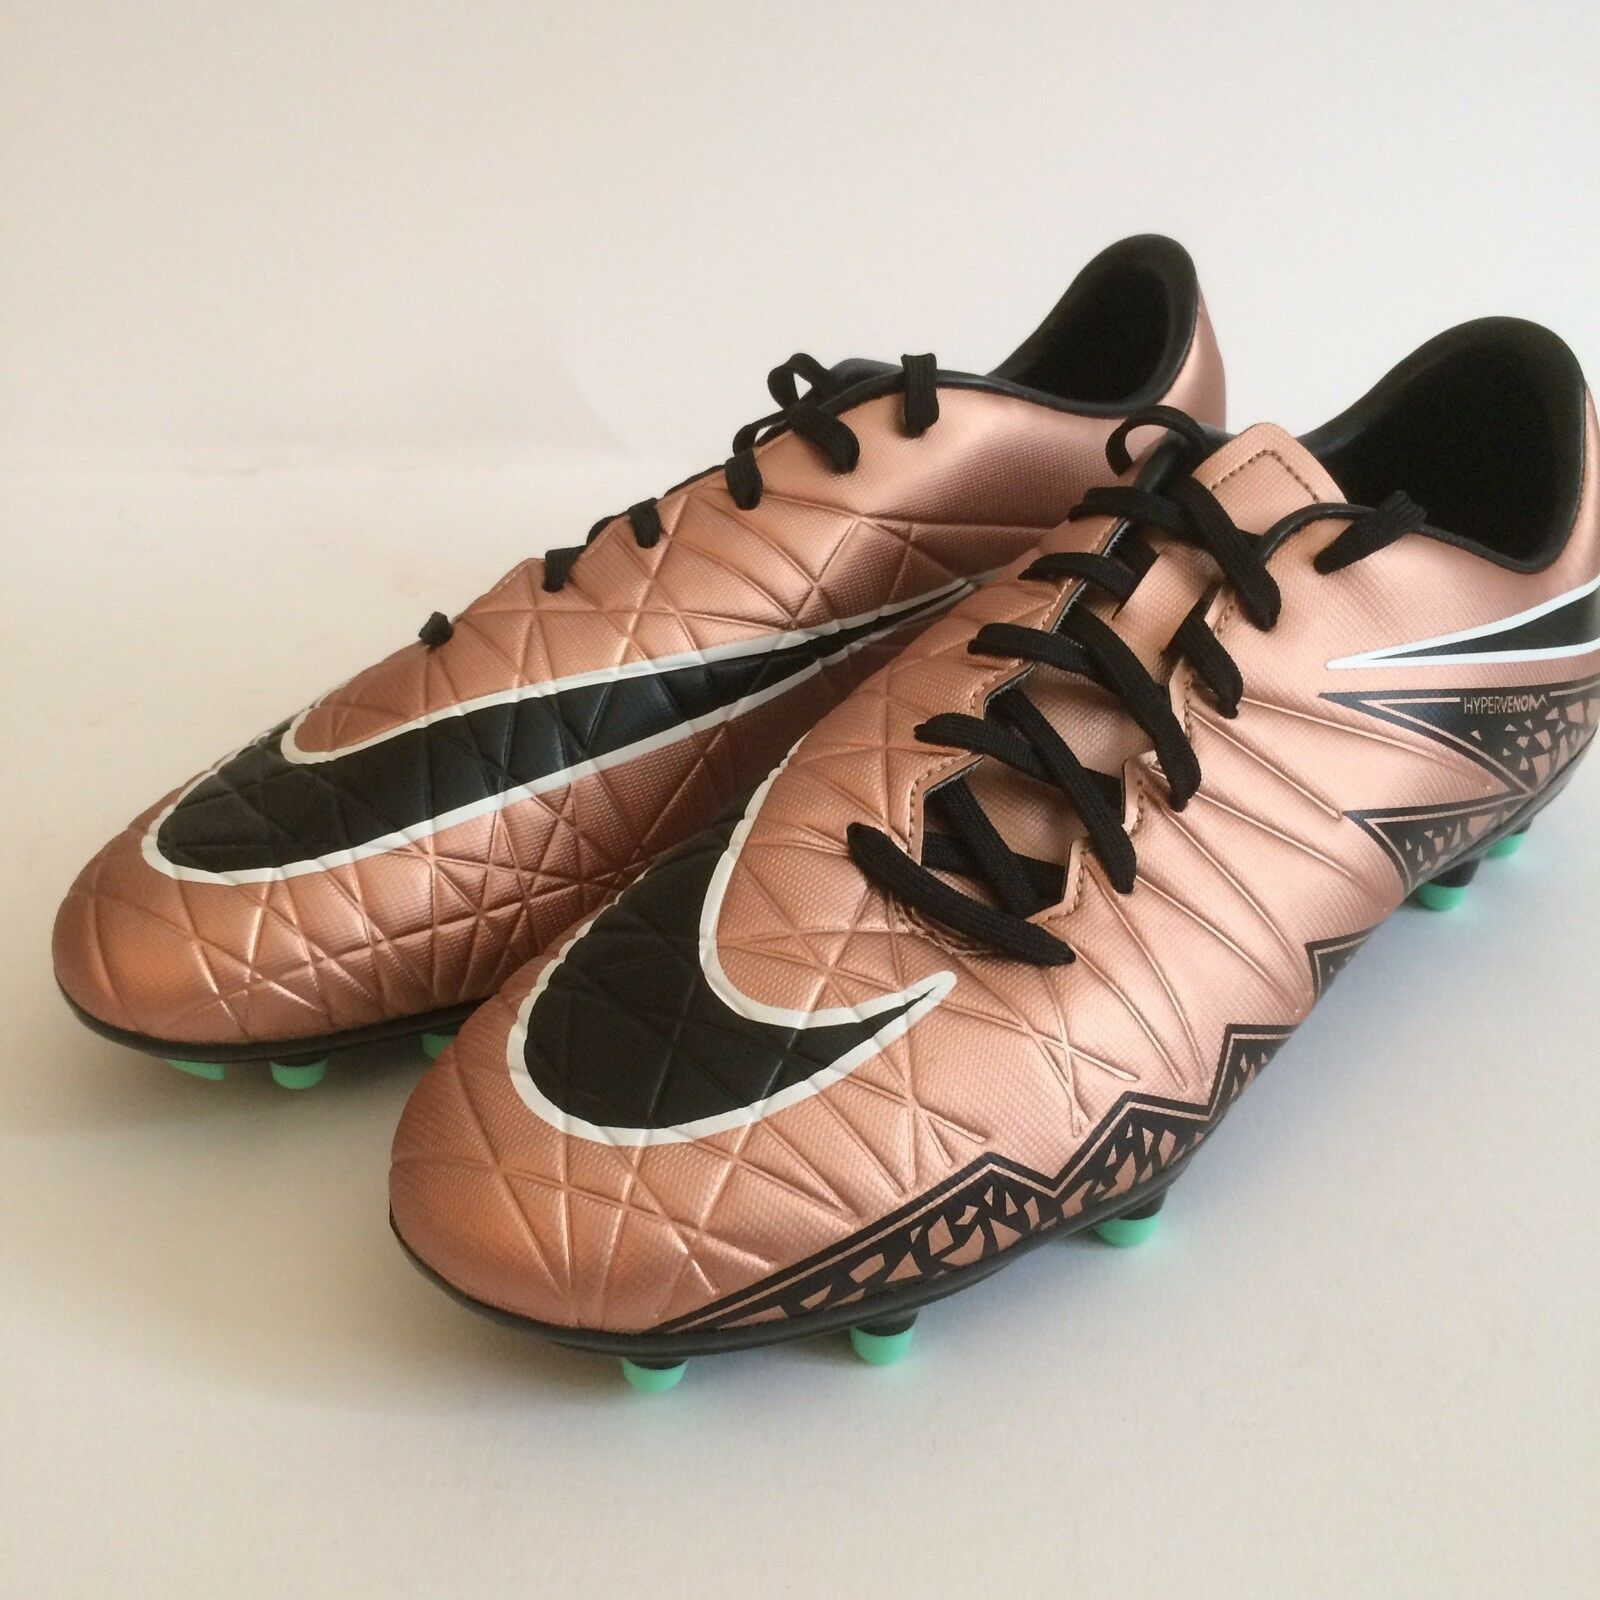 New Men's Nike Hypervenom Phelon II FG Soccer Cleat, Bronze/Black, Comfortable Brand discount